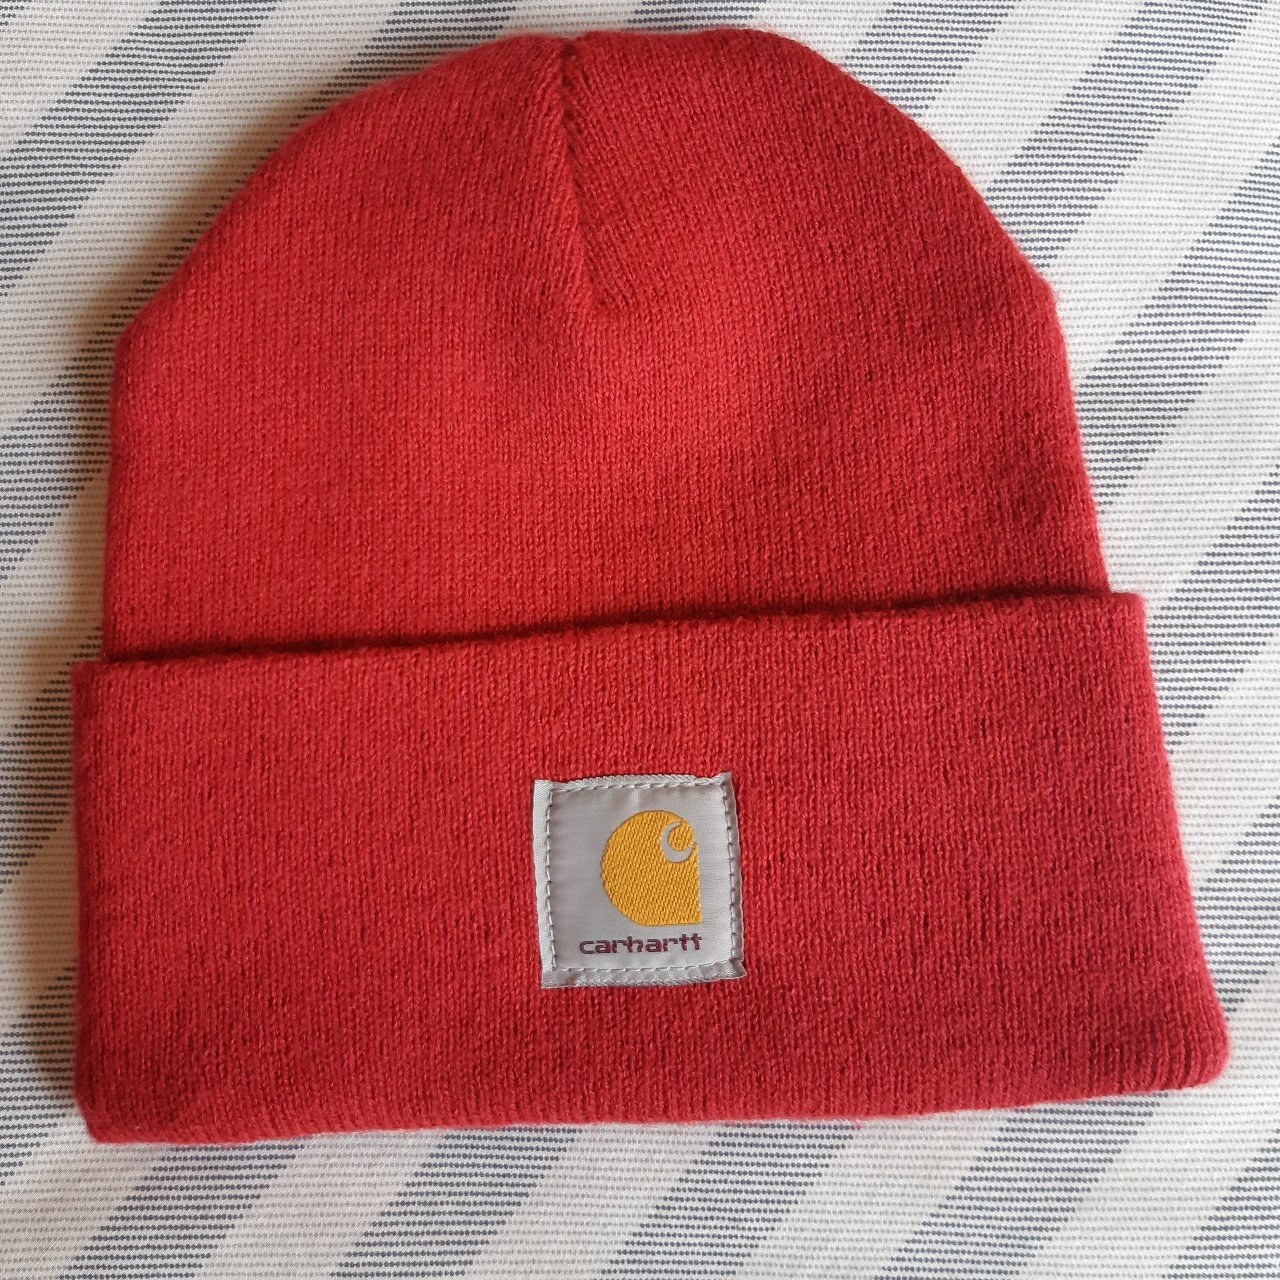 Red  Carhartt  Beanie new without tags.  FreeUKPostage  UK - Depop fd3b6f3ad08